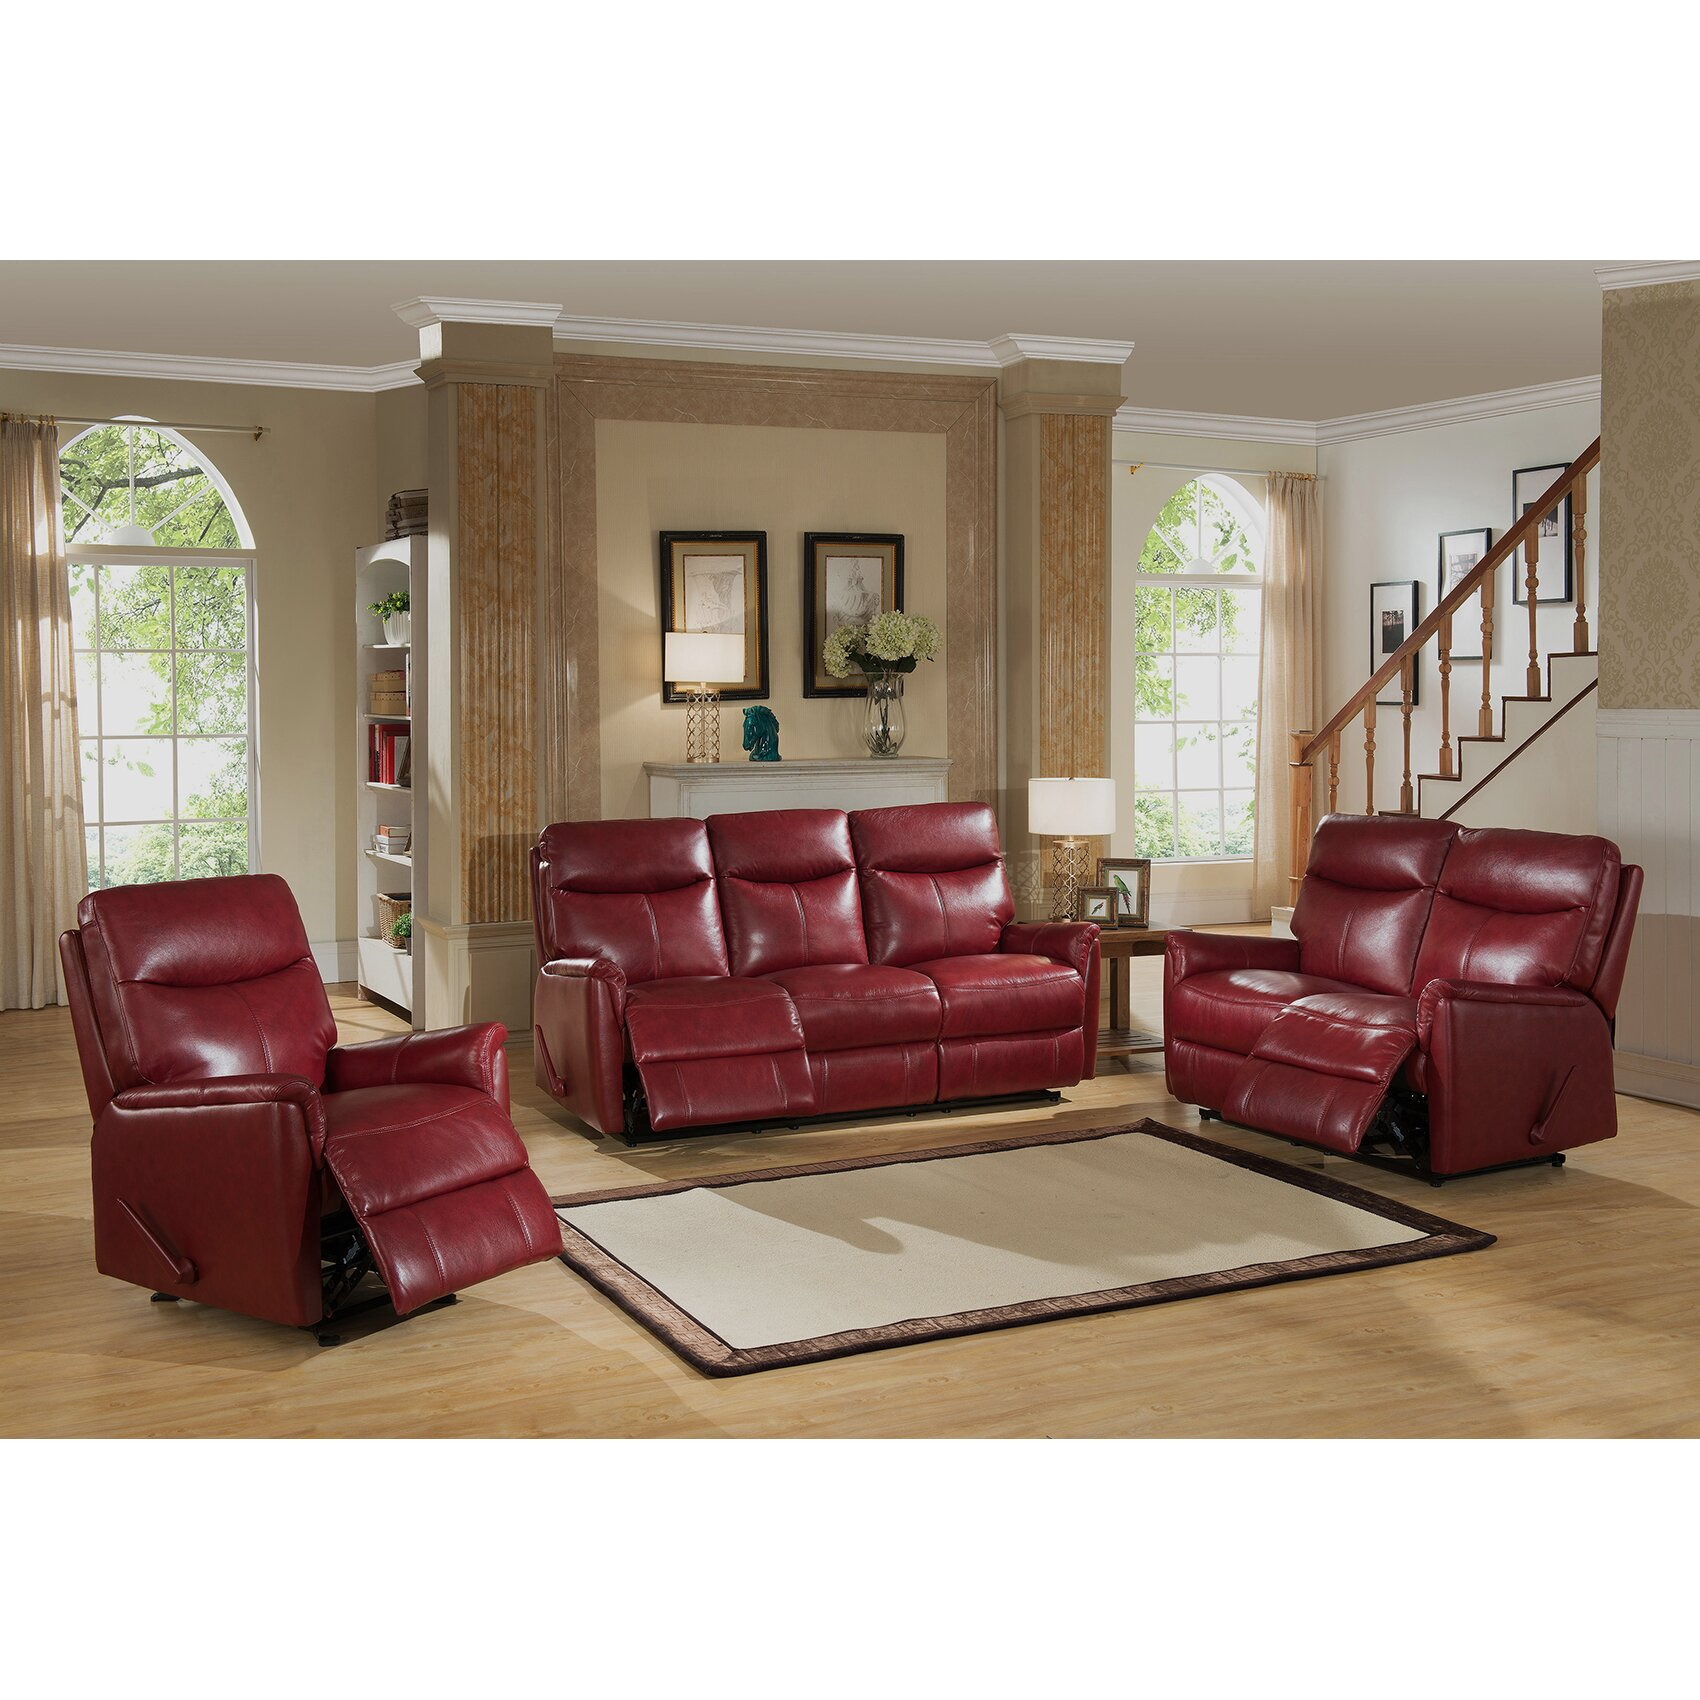 3 piece reclining living room set amax napa 3 leather lay flat reclining living room 23988